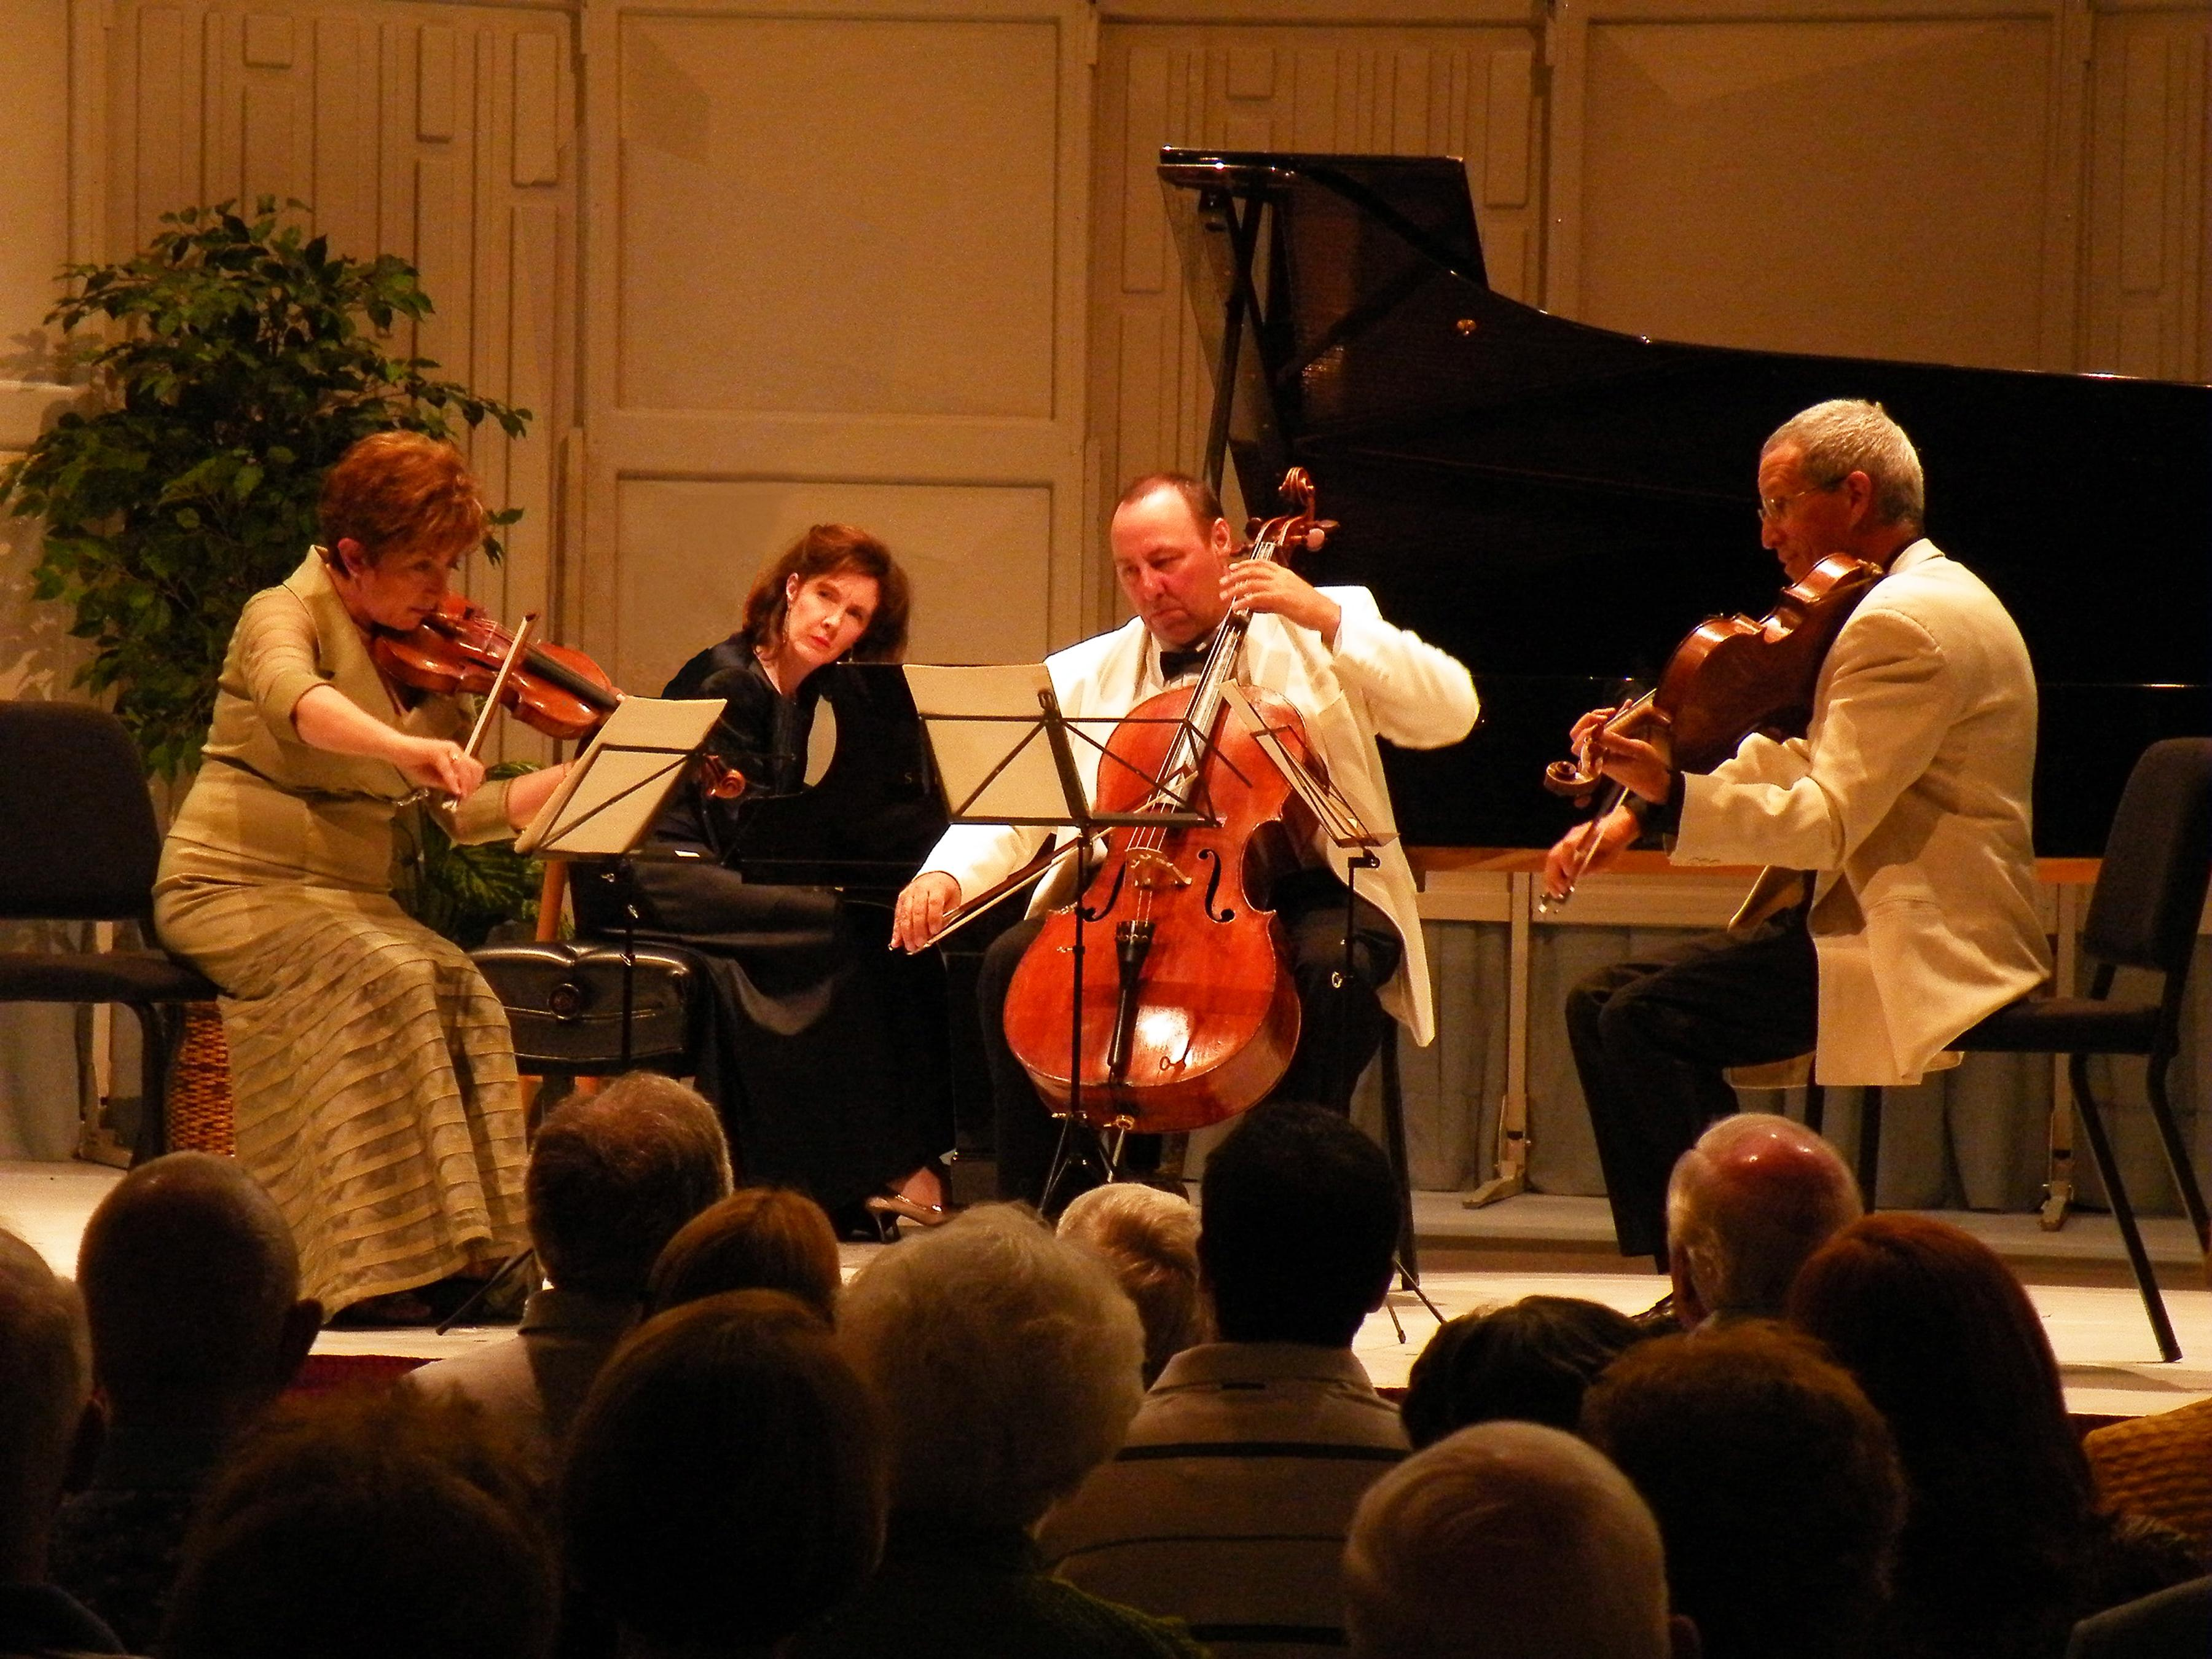 A quartet performing together.